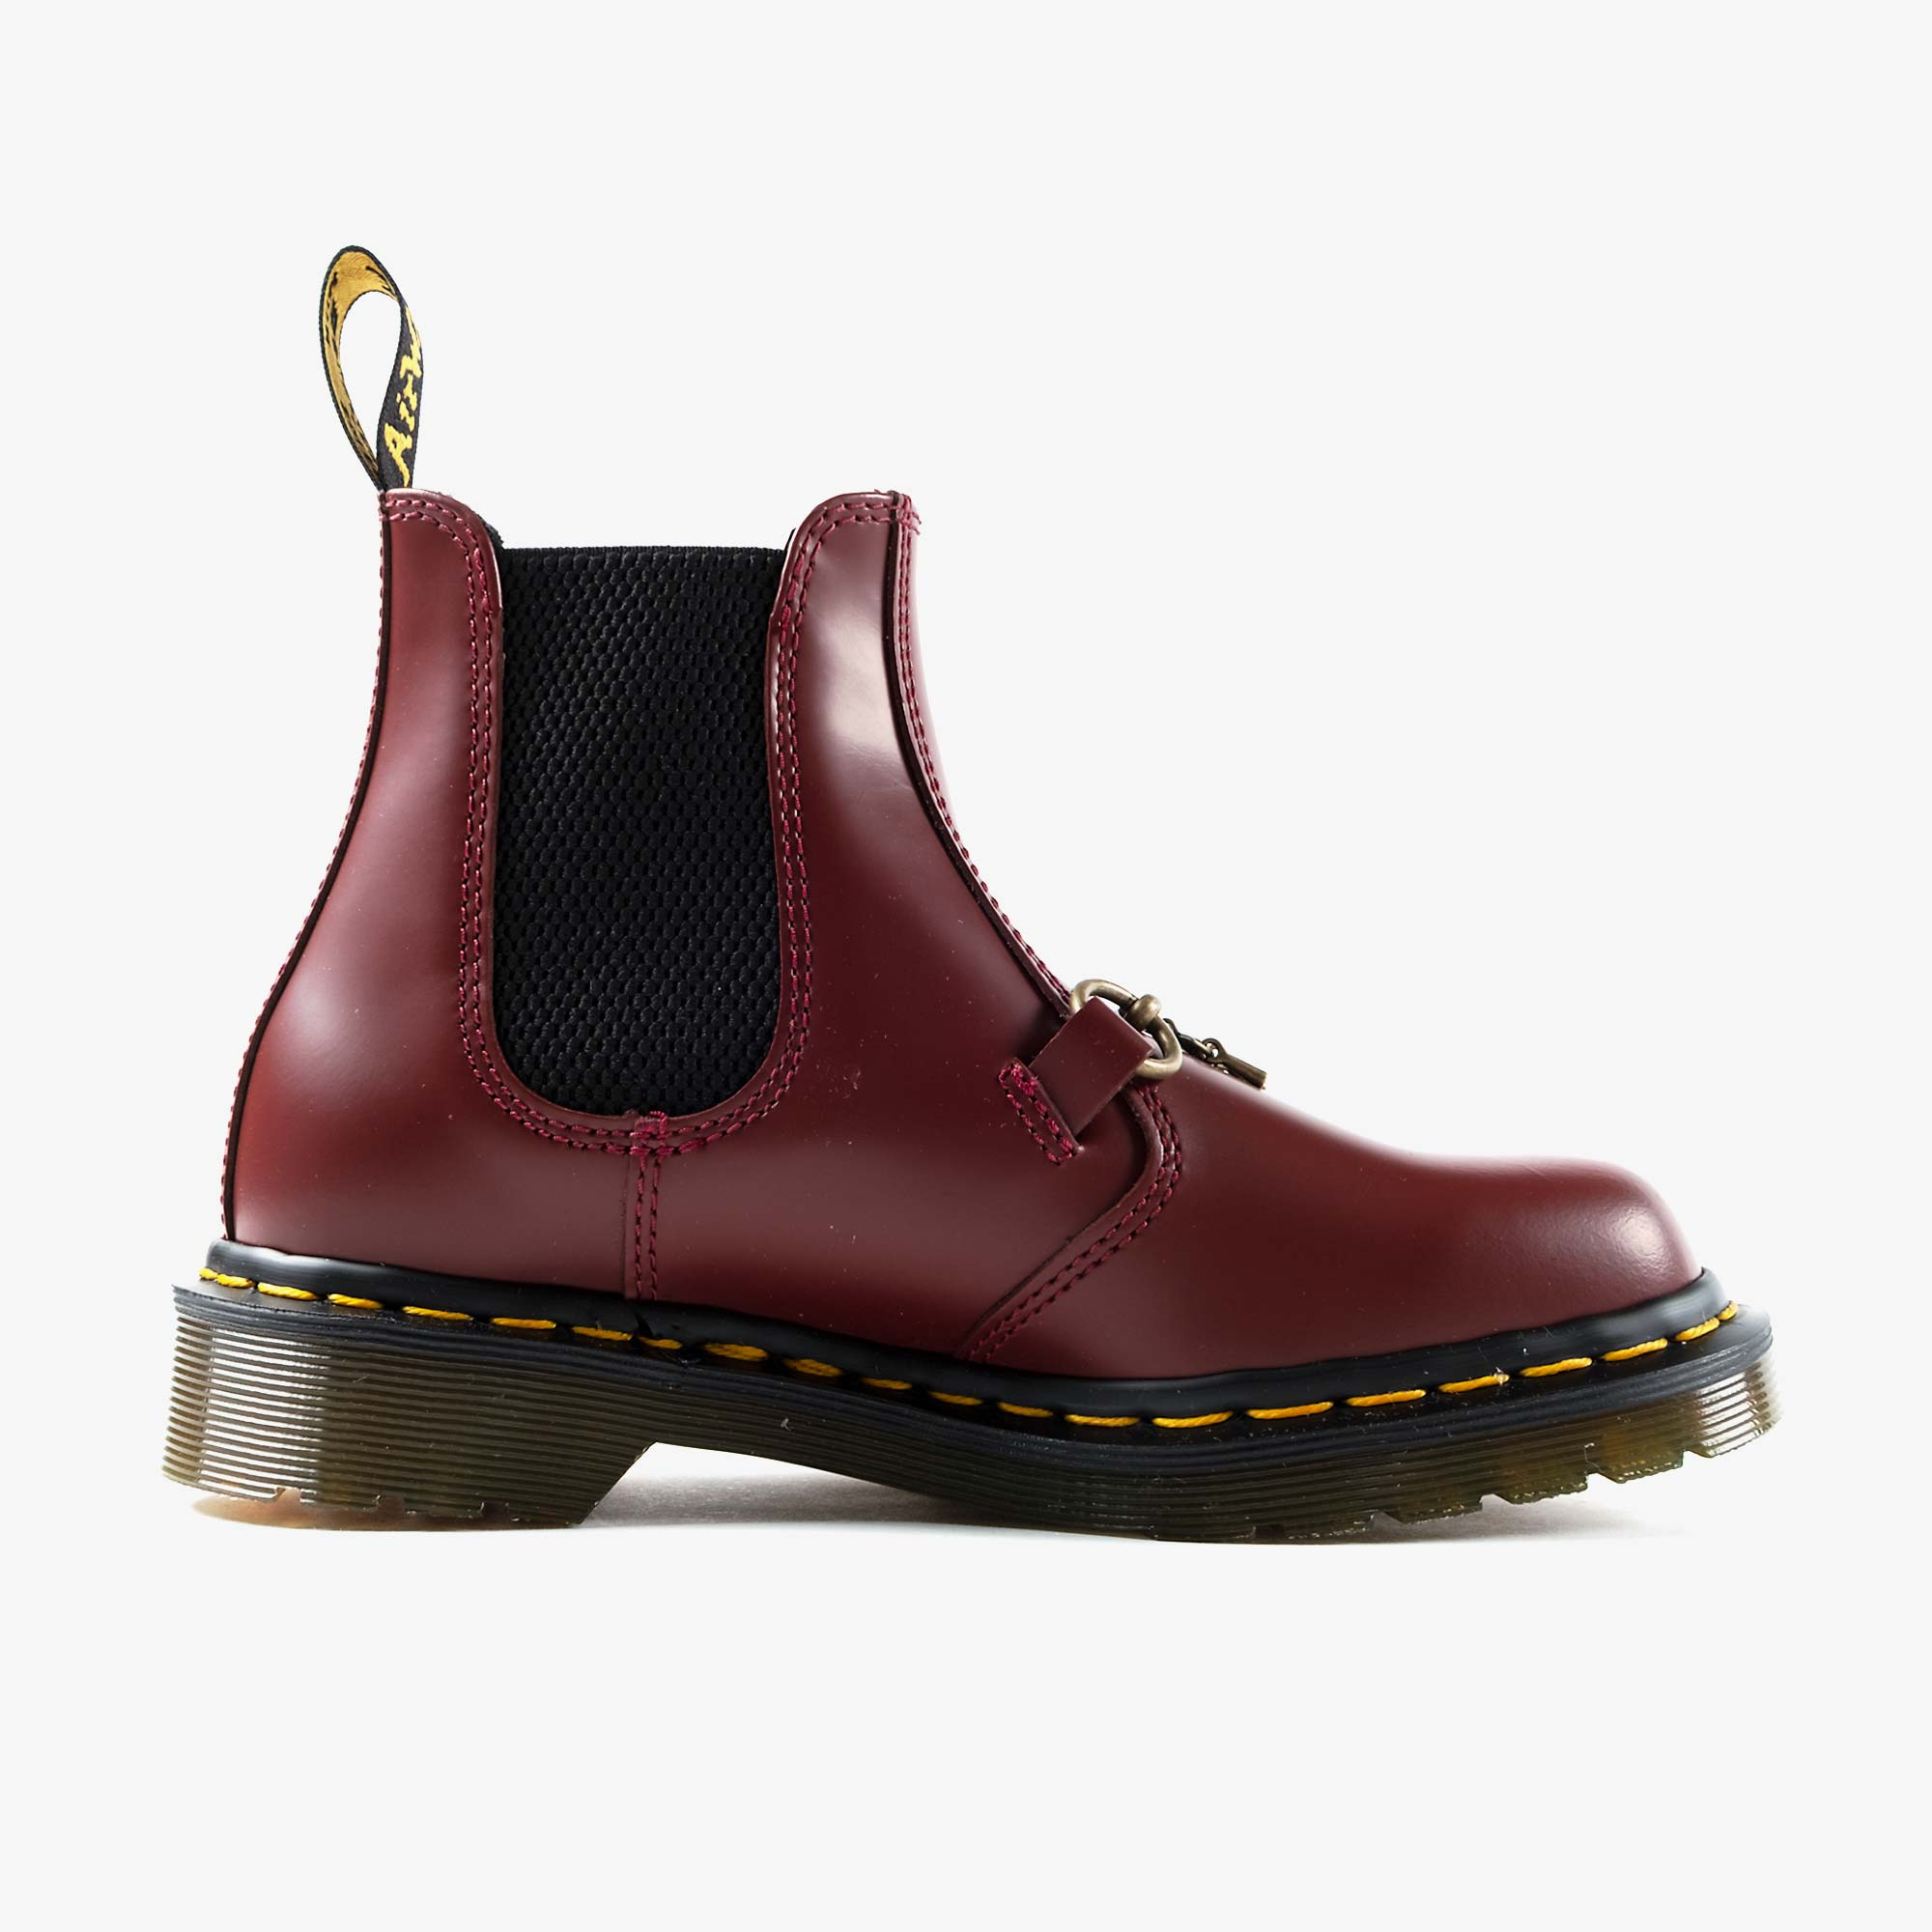 Needles Needles x Dr. Martens 2976 Snaffle - Cherry Red 4